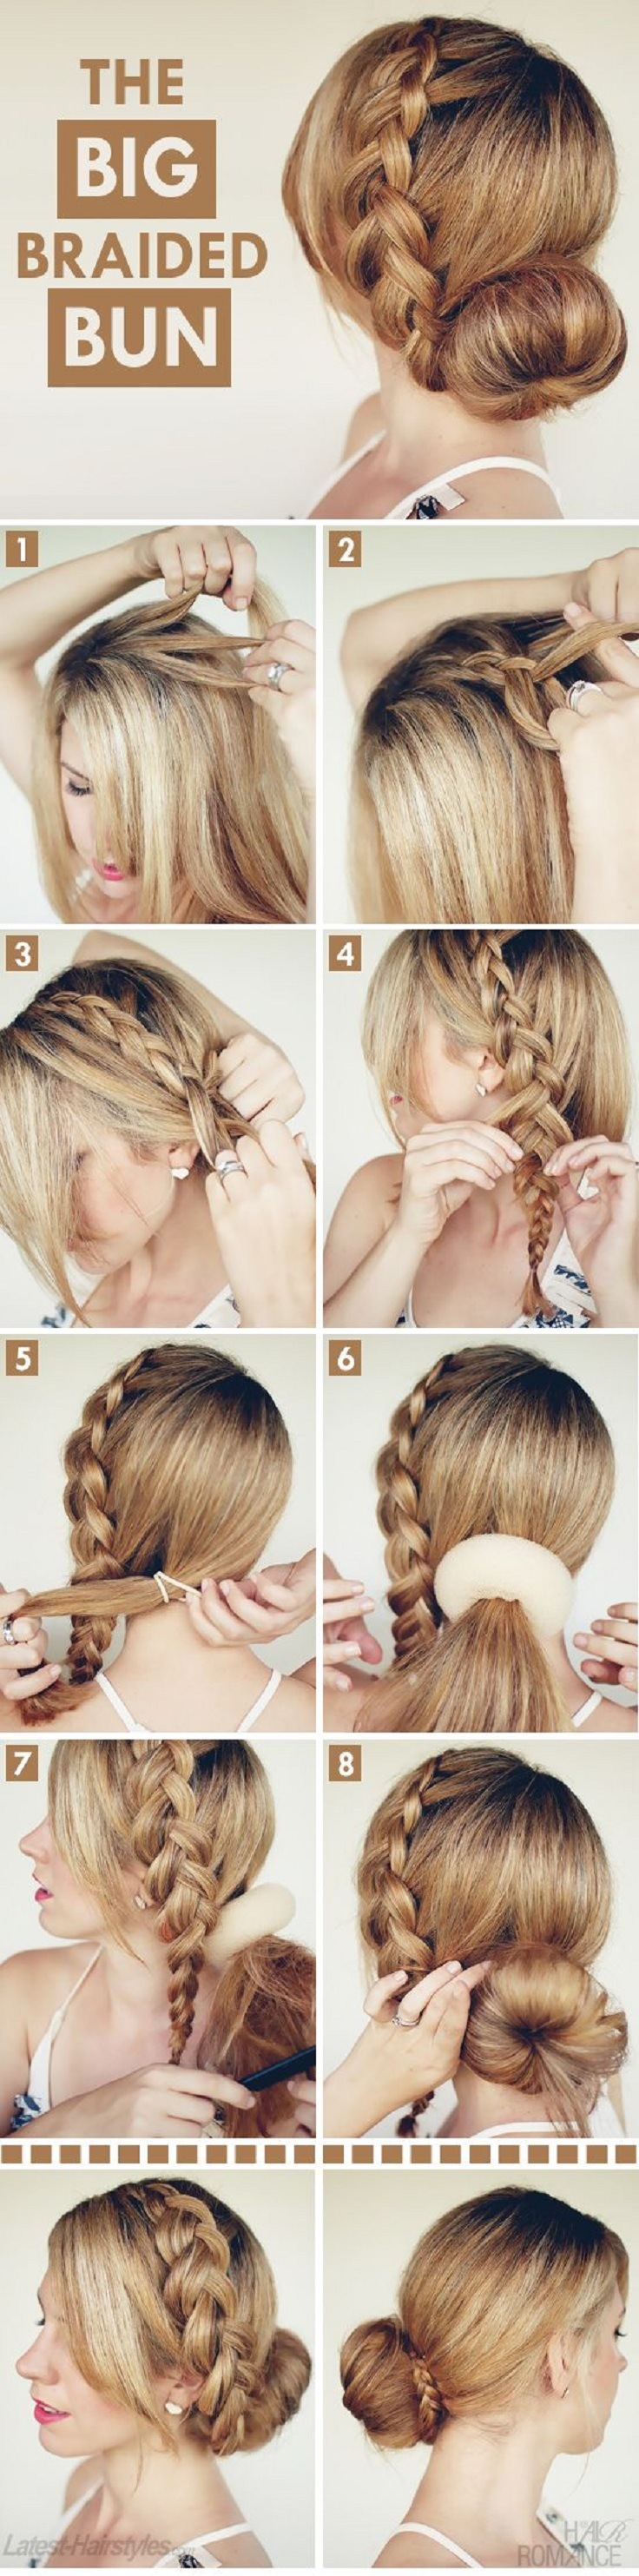 Hair Braid Tutorials  Easy to be done Top 10  Top Inspired